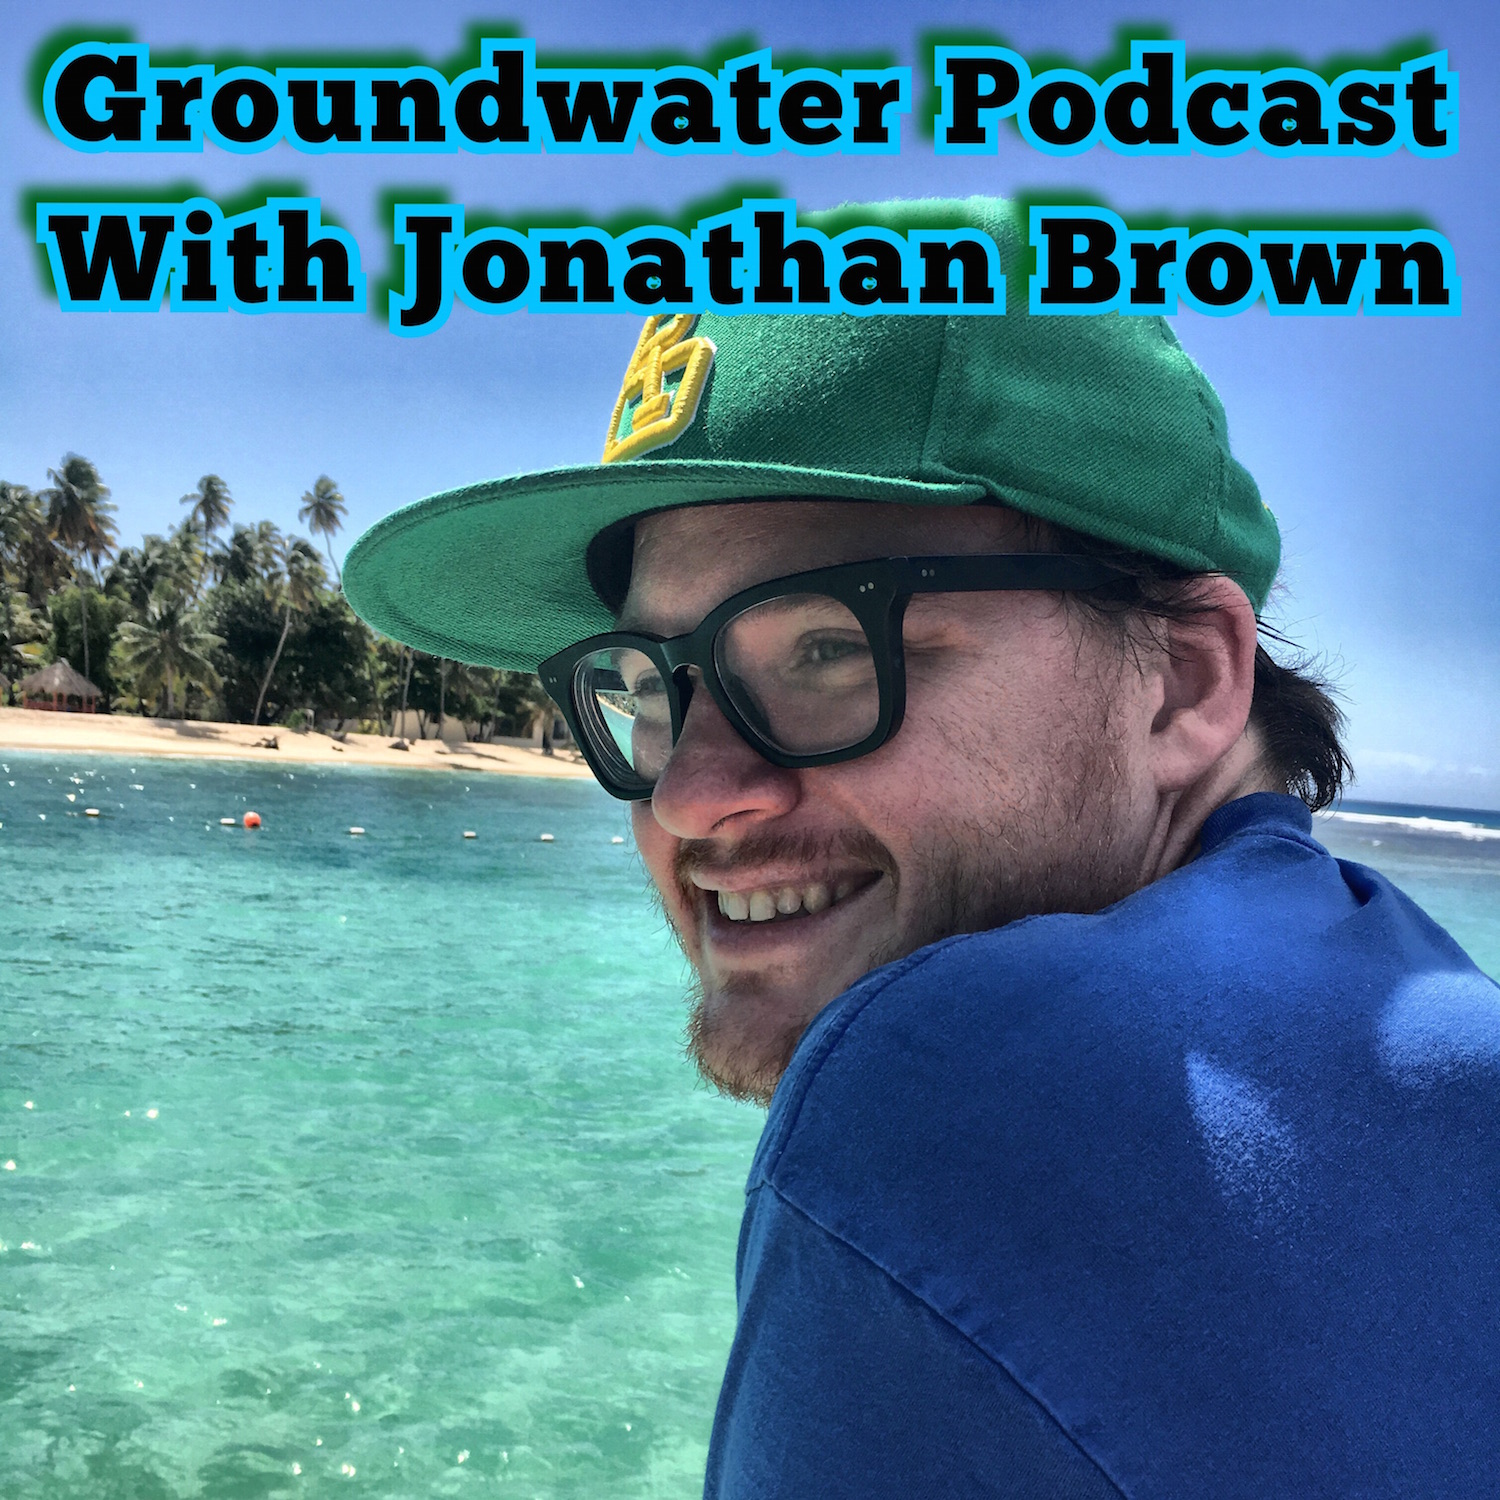 Groundwater Podcast with Jonathan Brown show art